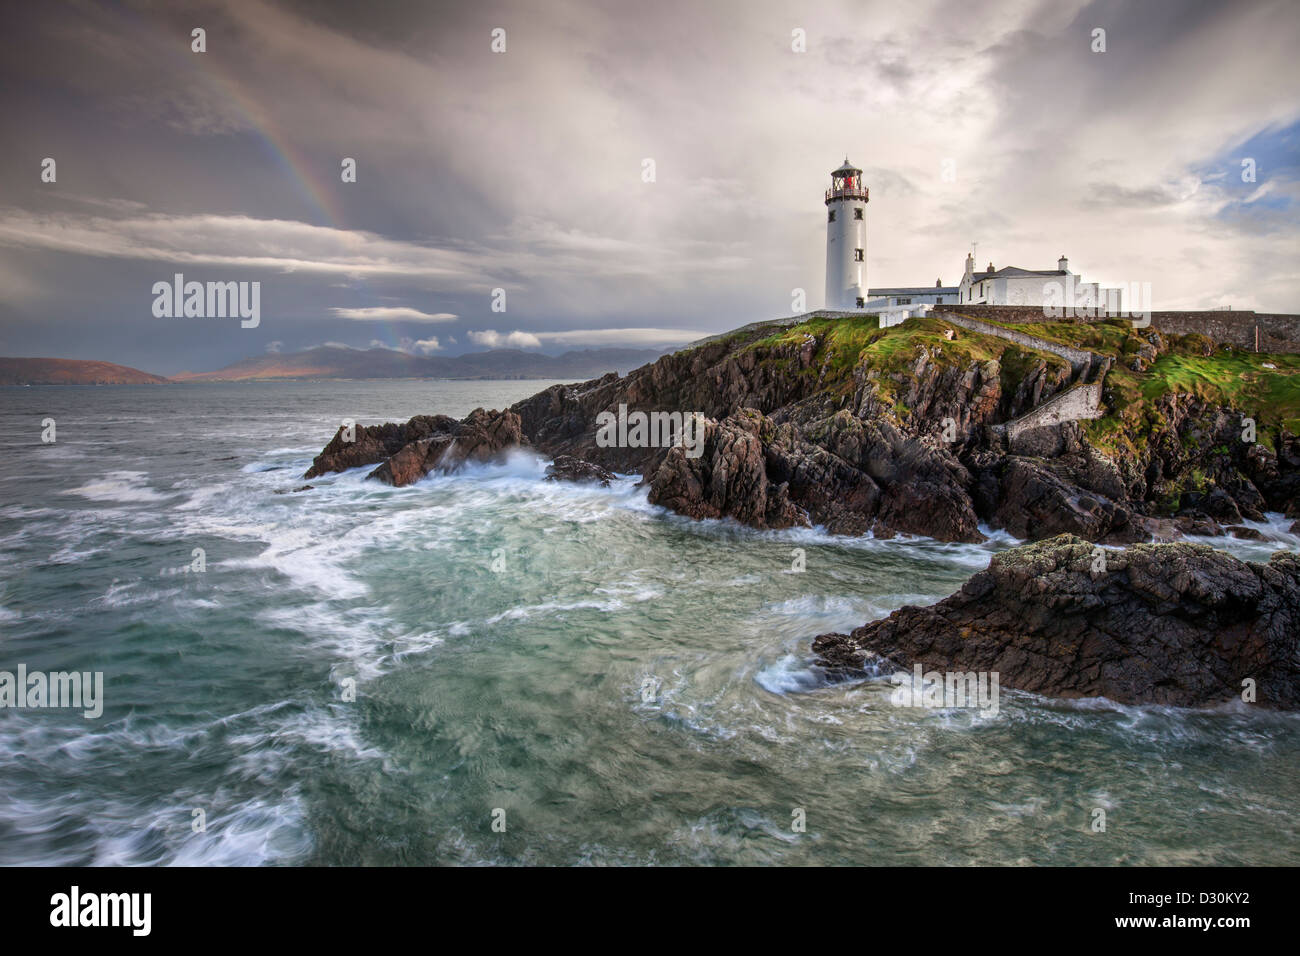 Stormy day at Fanad Head Lighthouse in County Donegal. - Stock Image